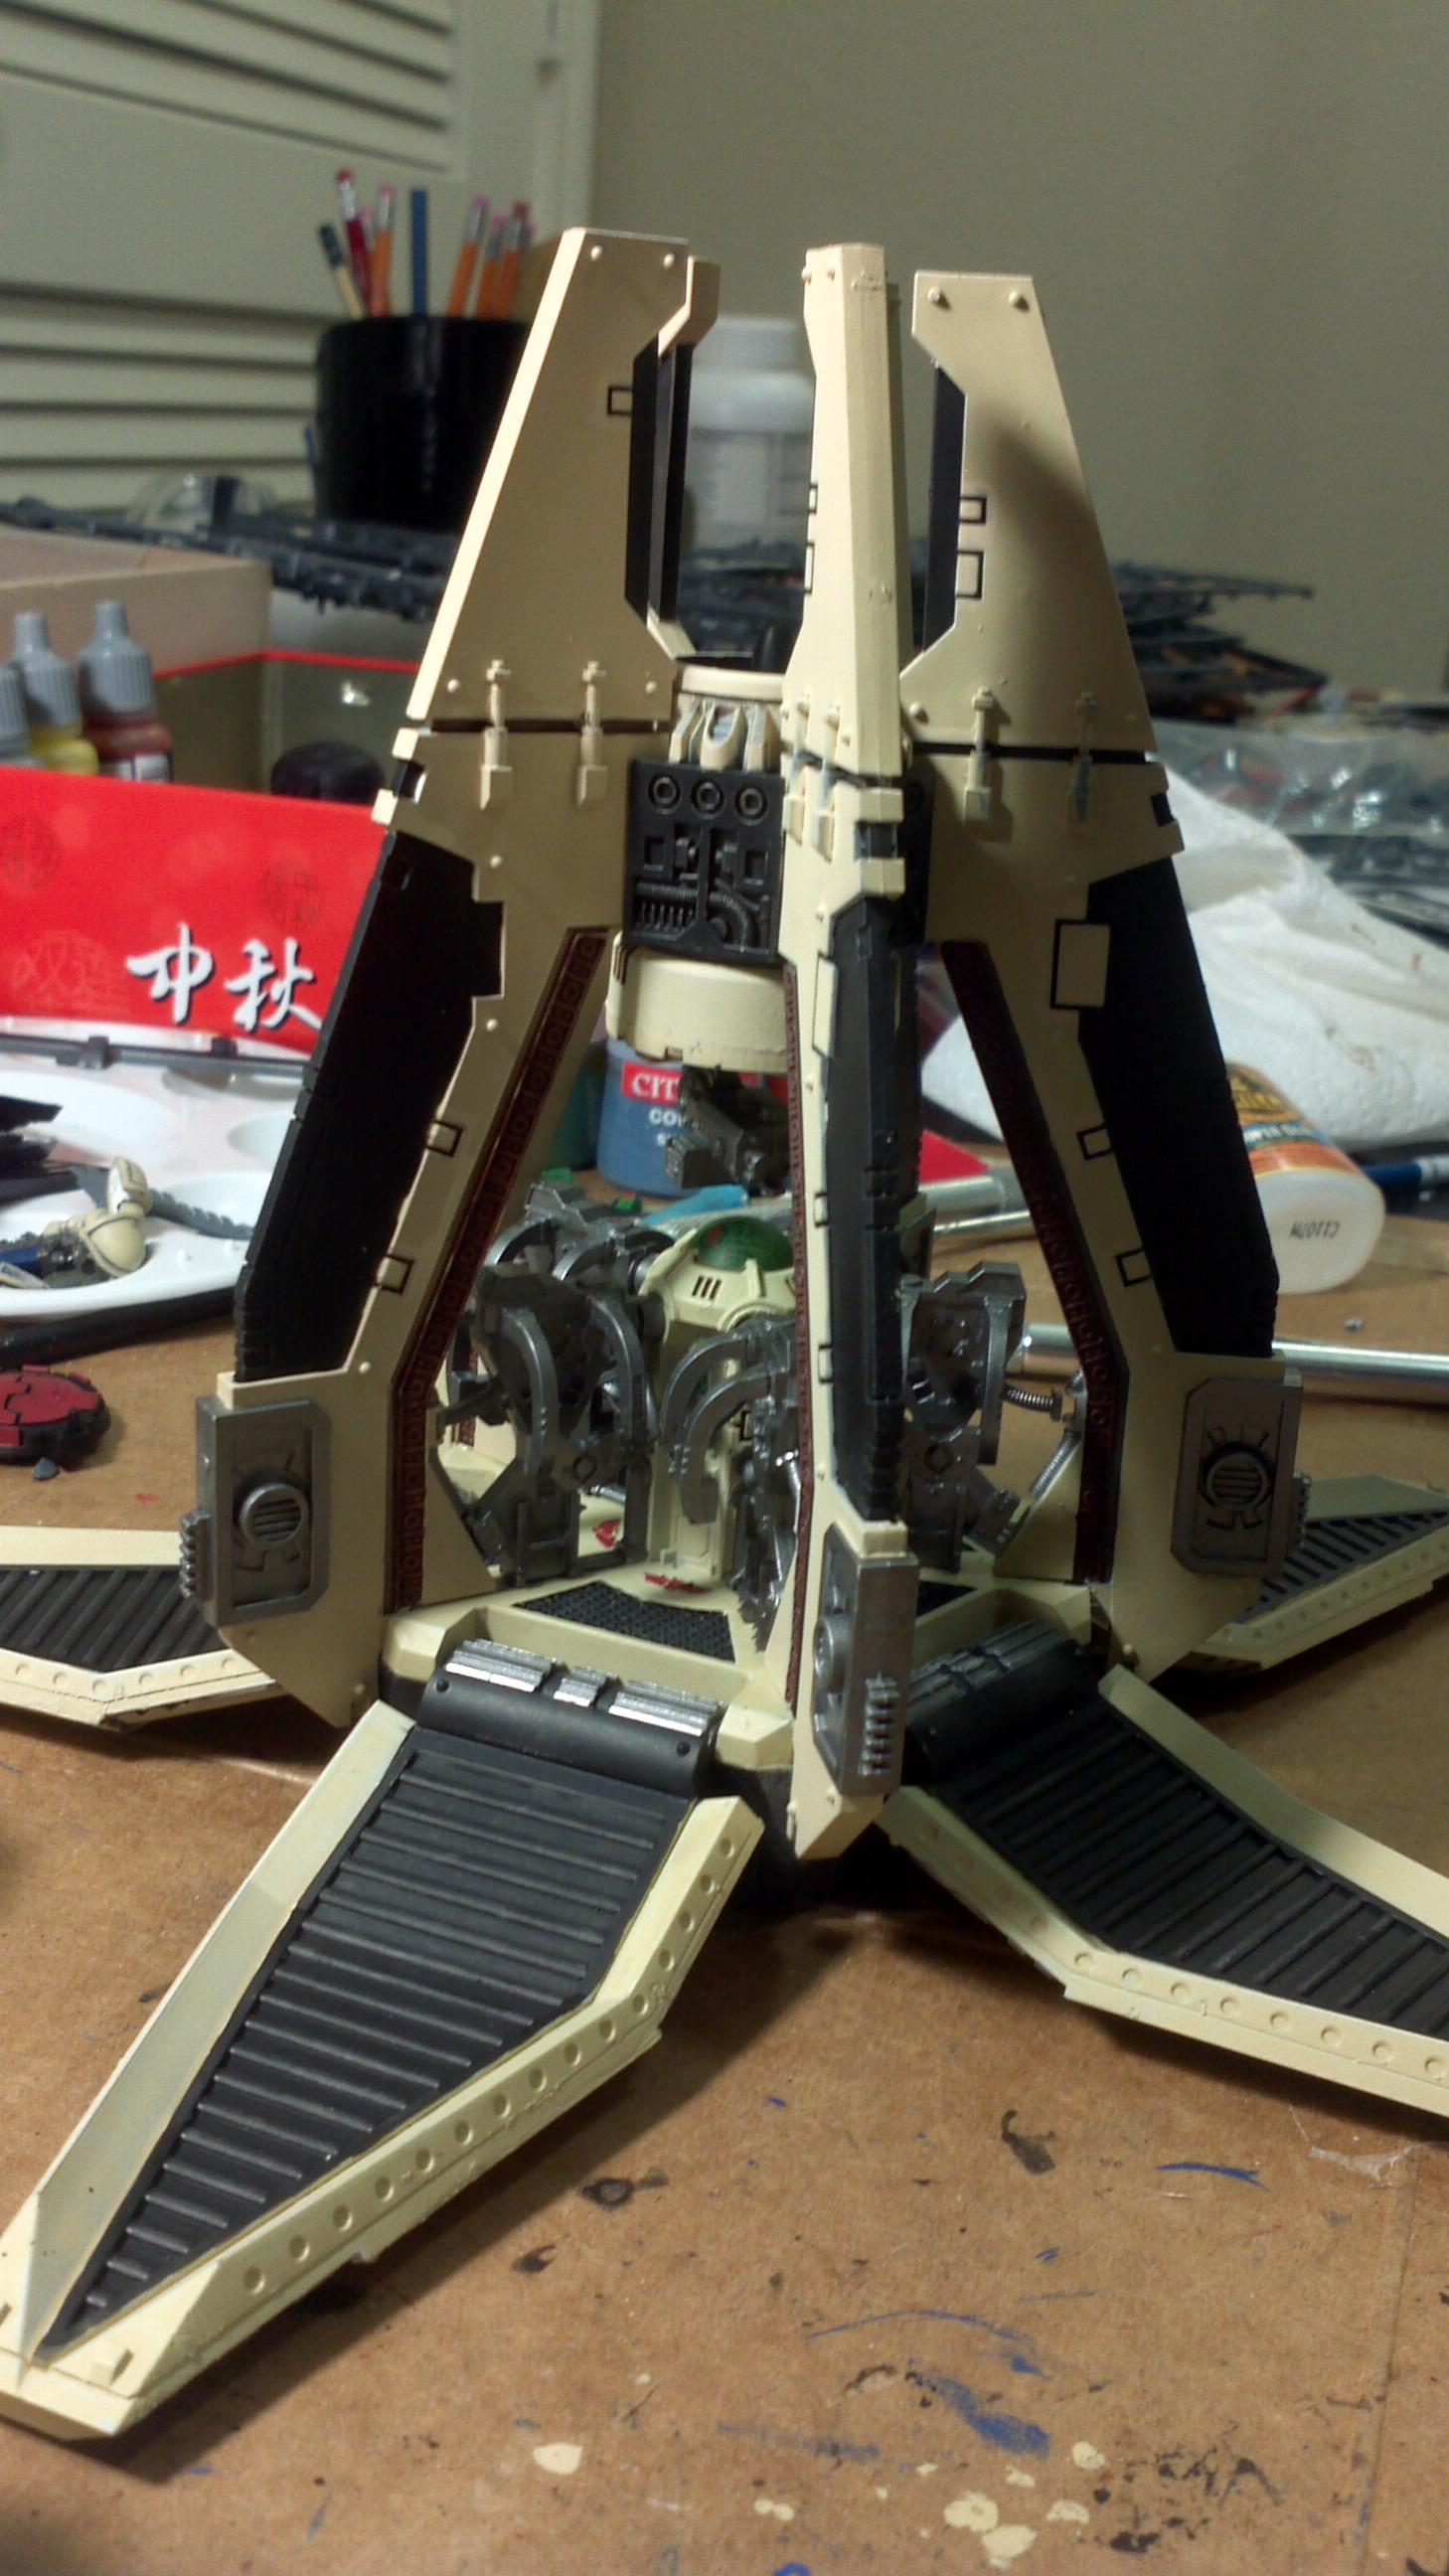 Side pillars are assembled